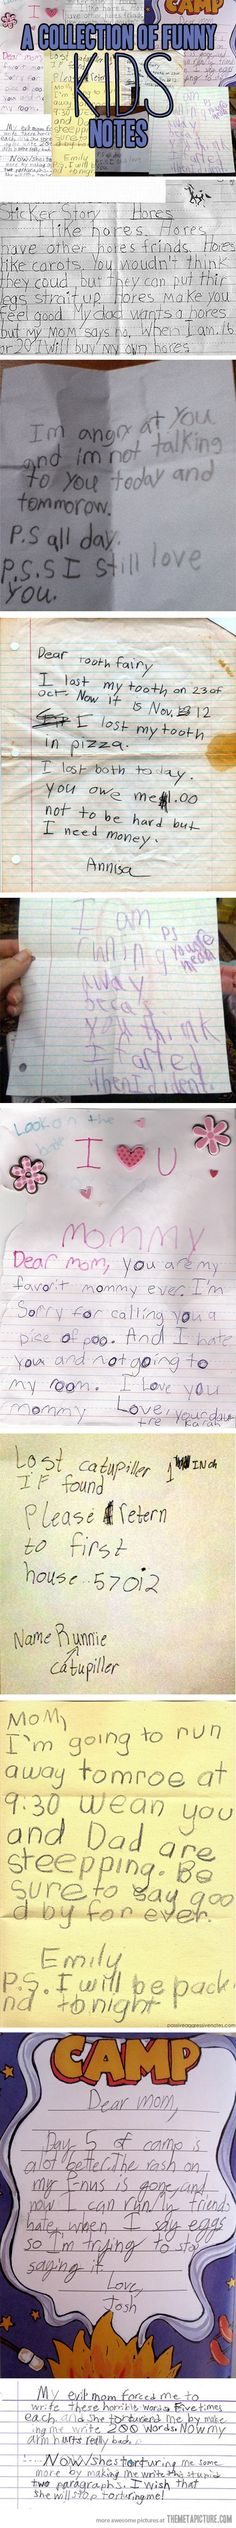 funny notes from children